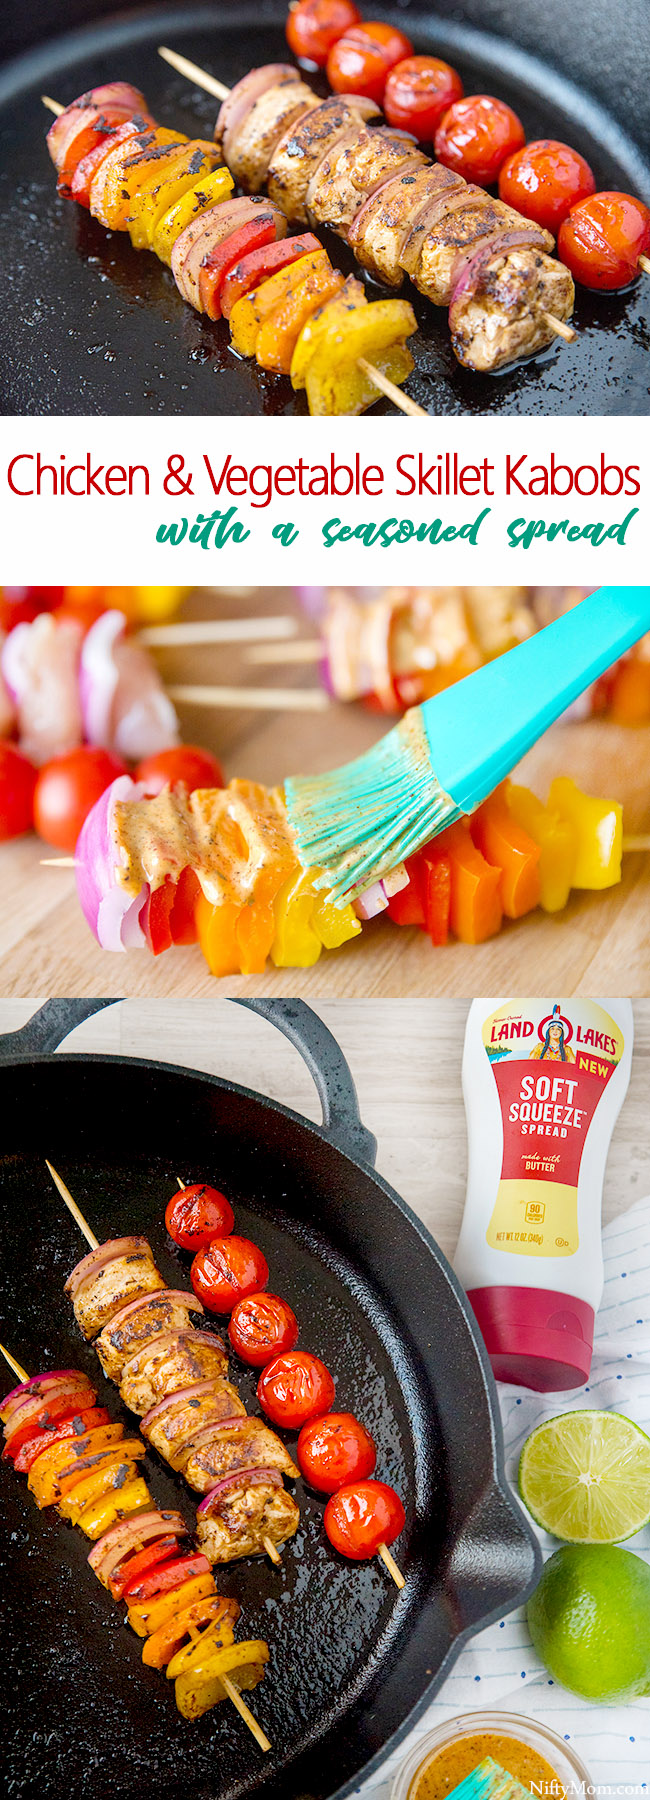 Quick & Easy Dinner - Chicken & Vegetable Skillet Kabobs + a Seasoned Spread